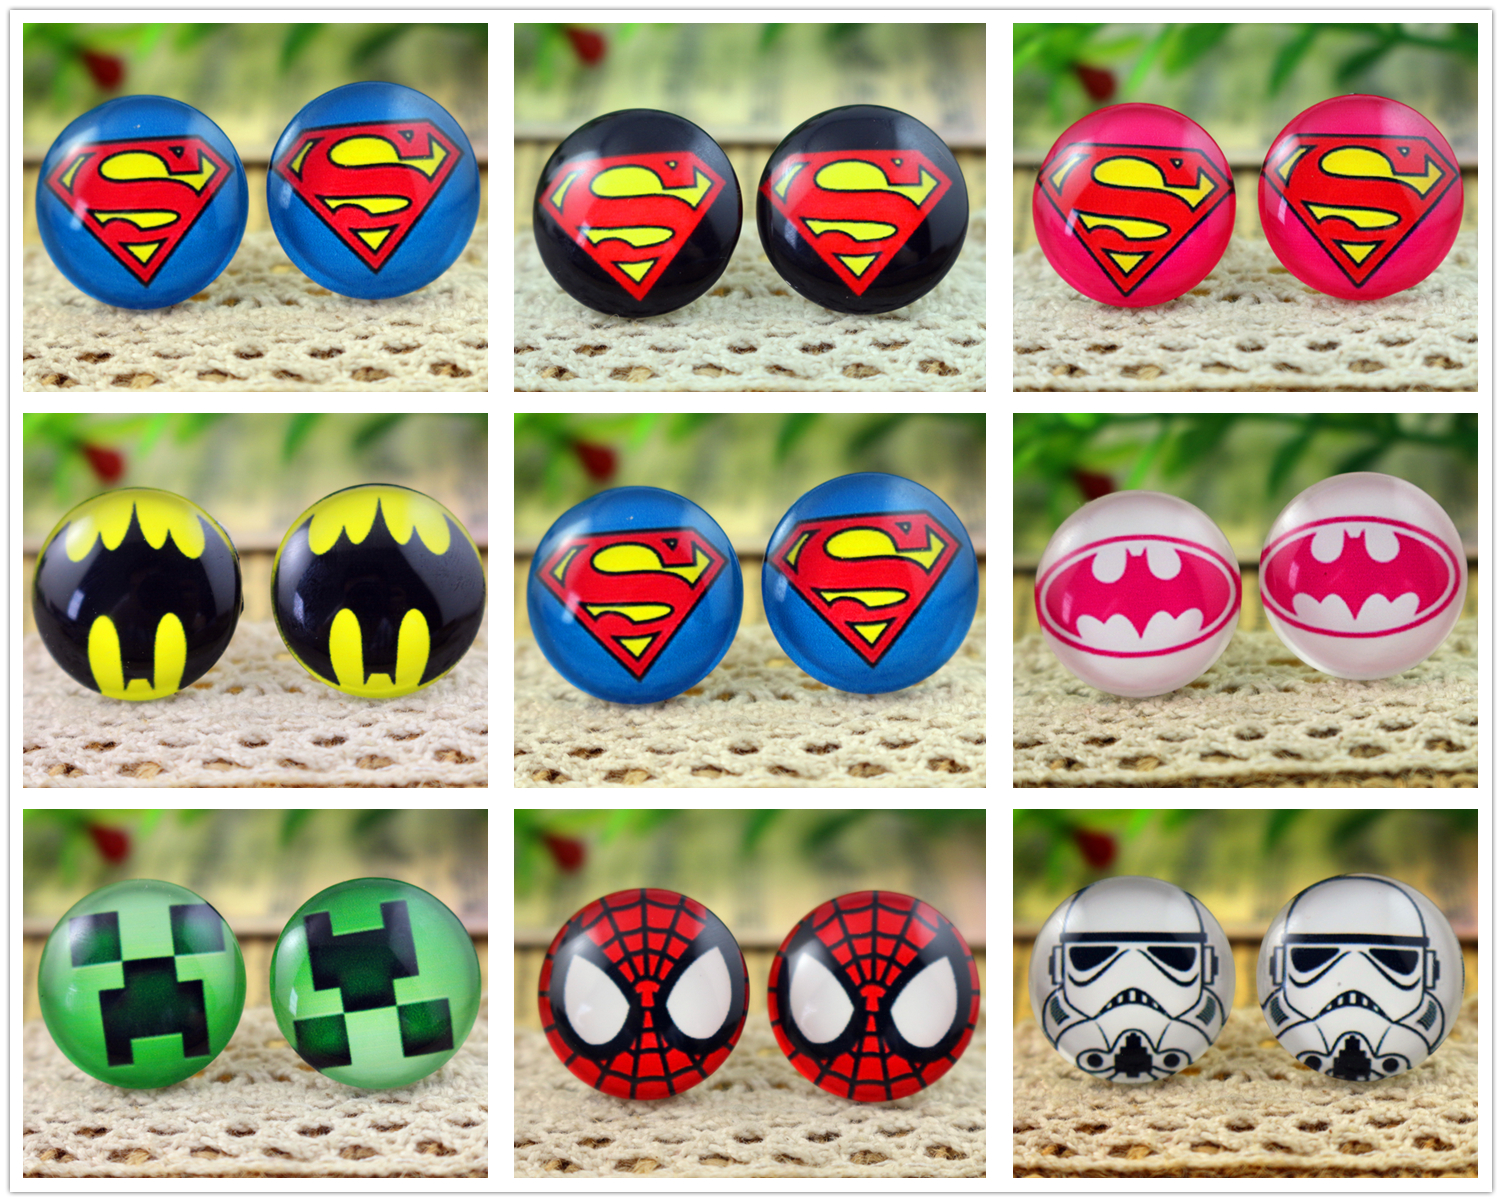 Hot Sale 10pcs/lot 20mm Super Handmade Photo Glass Cabochons Pattern Domed Fit 20mm Cabochon Base Bracelet  SuppliesHot Sale 10pcs/lot 20mm Super Handmade Photo Glass Cabochons Pattern Domed Fit 20mm Cabochon Base Bracelet  Supplies